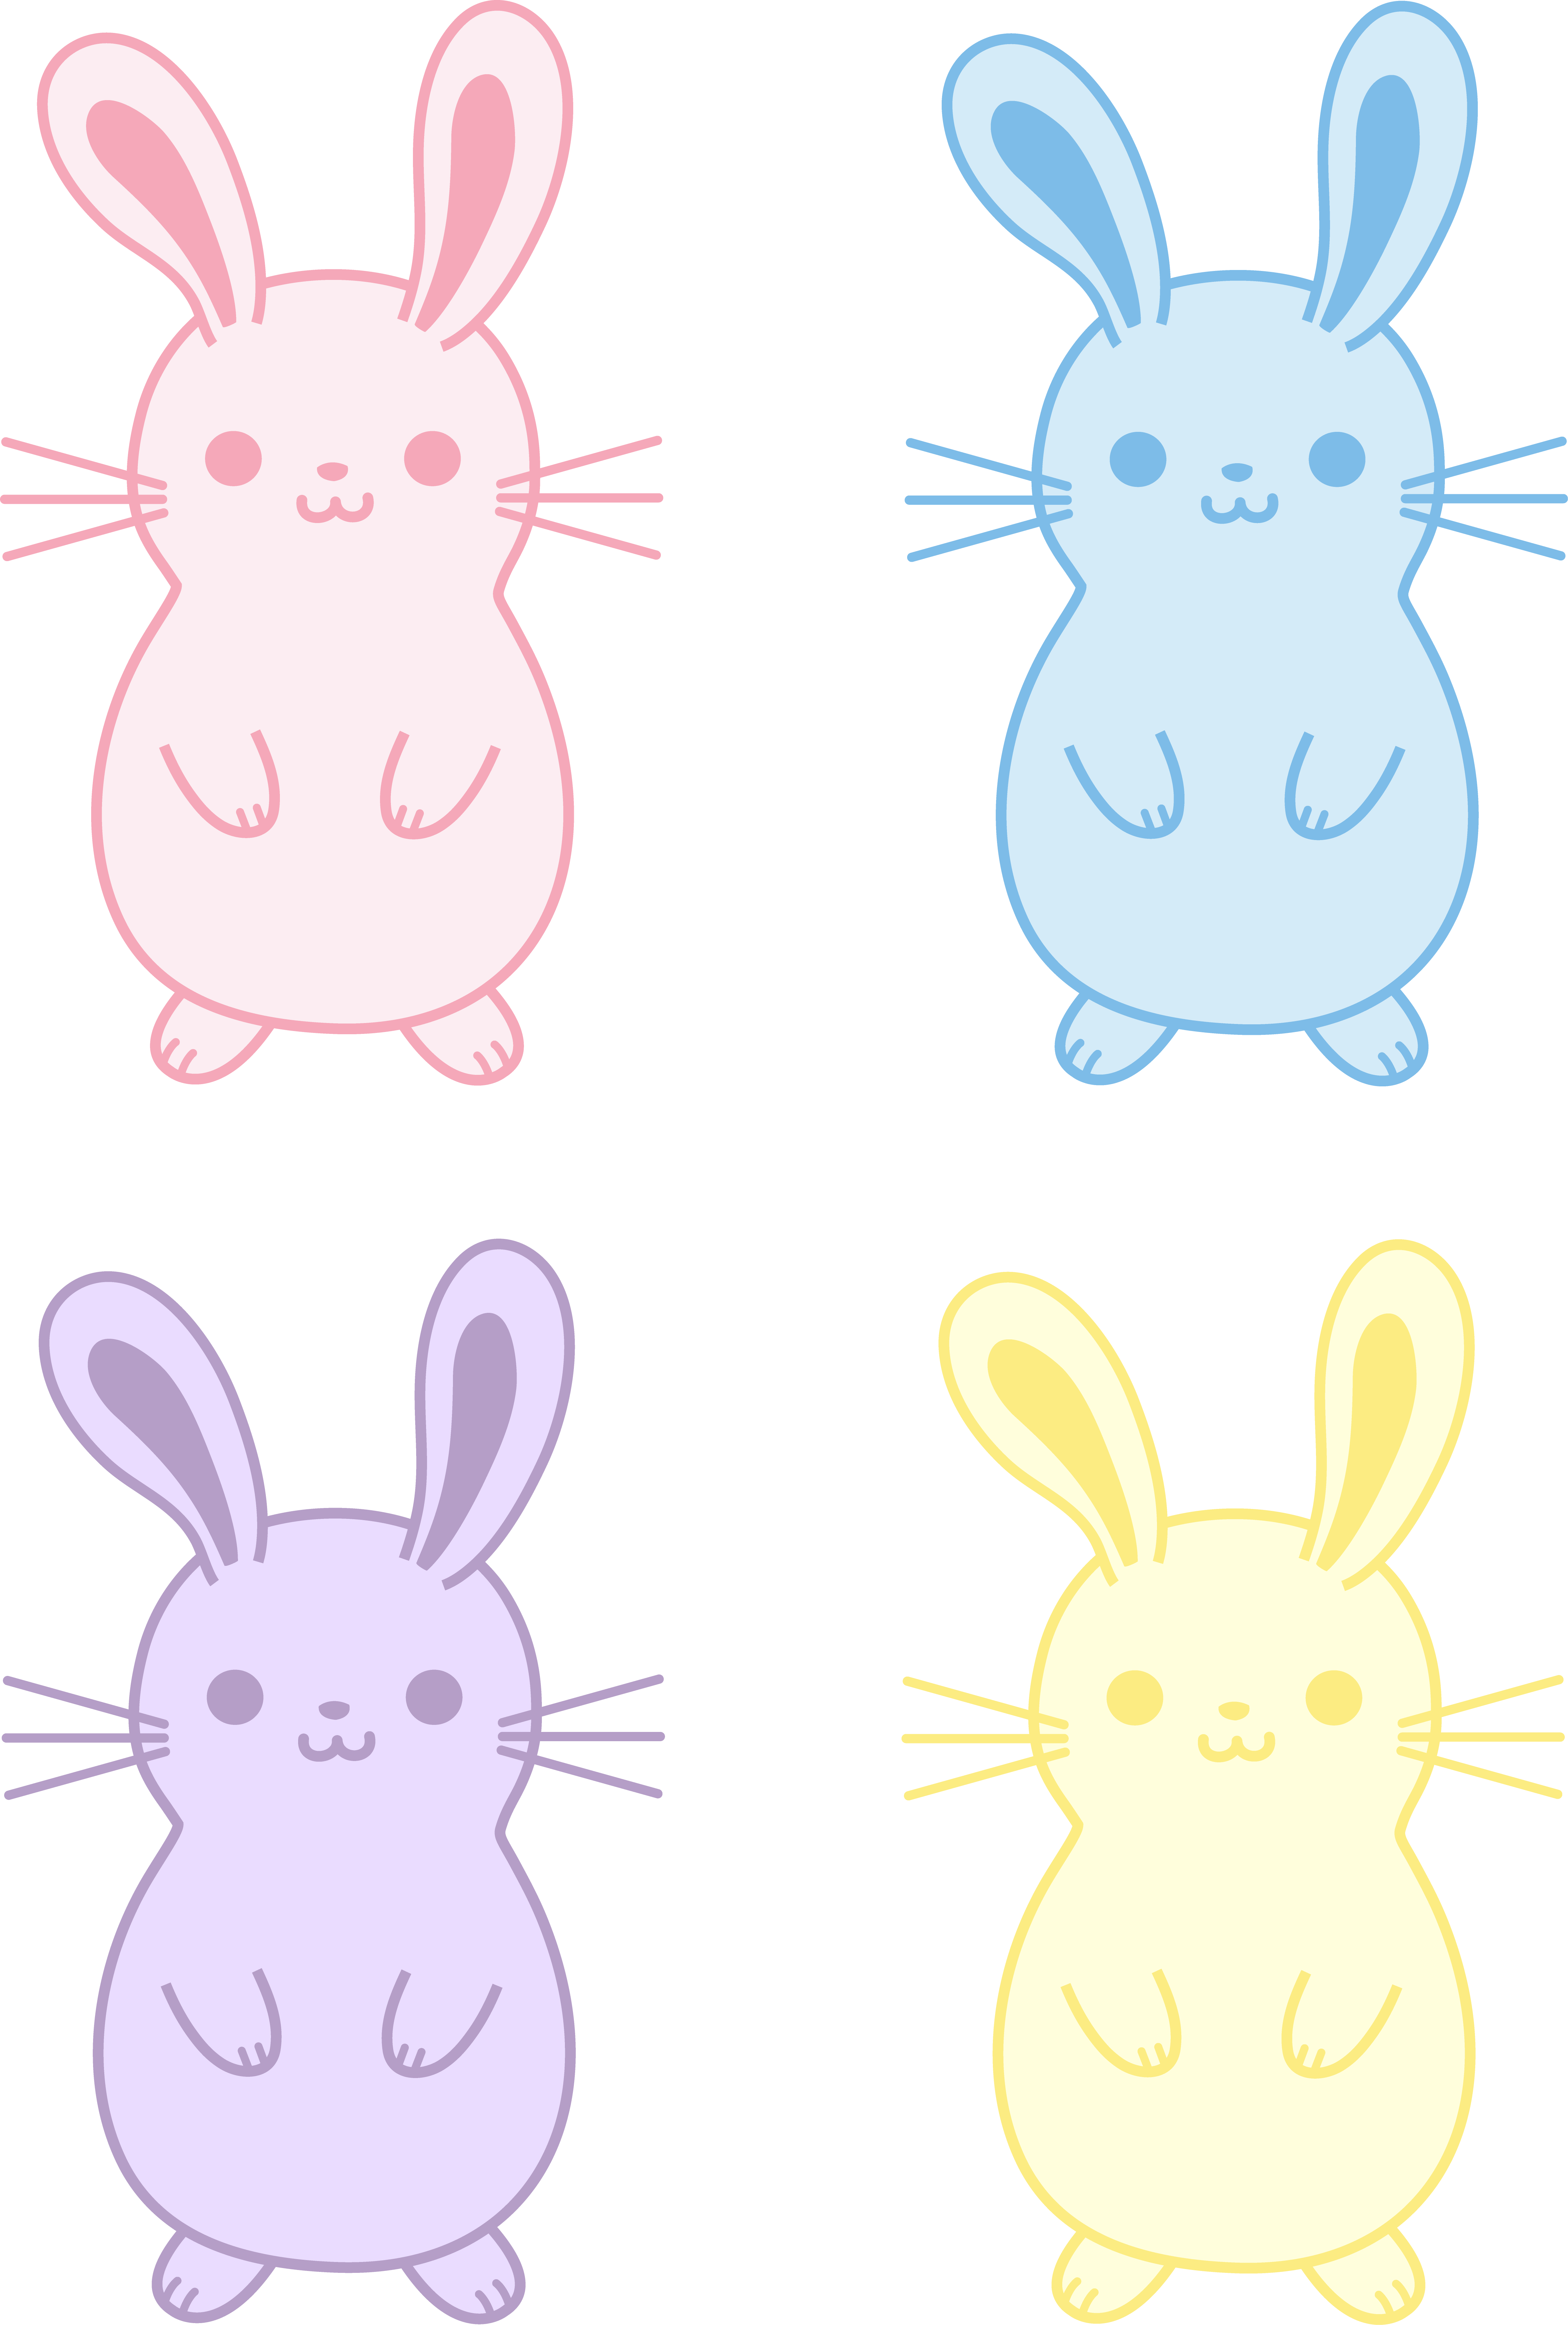 Chubby snowflake clipart clip free library Bunny Clipart Chubby Free collection | Download and share Bunny ... clip free library